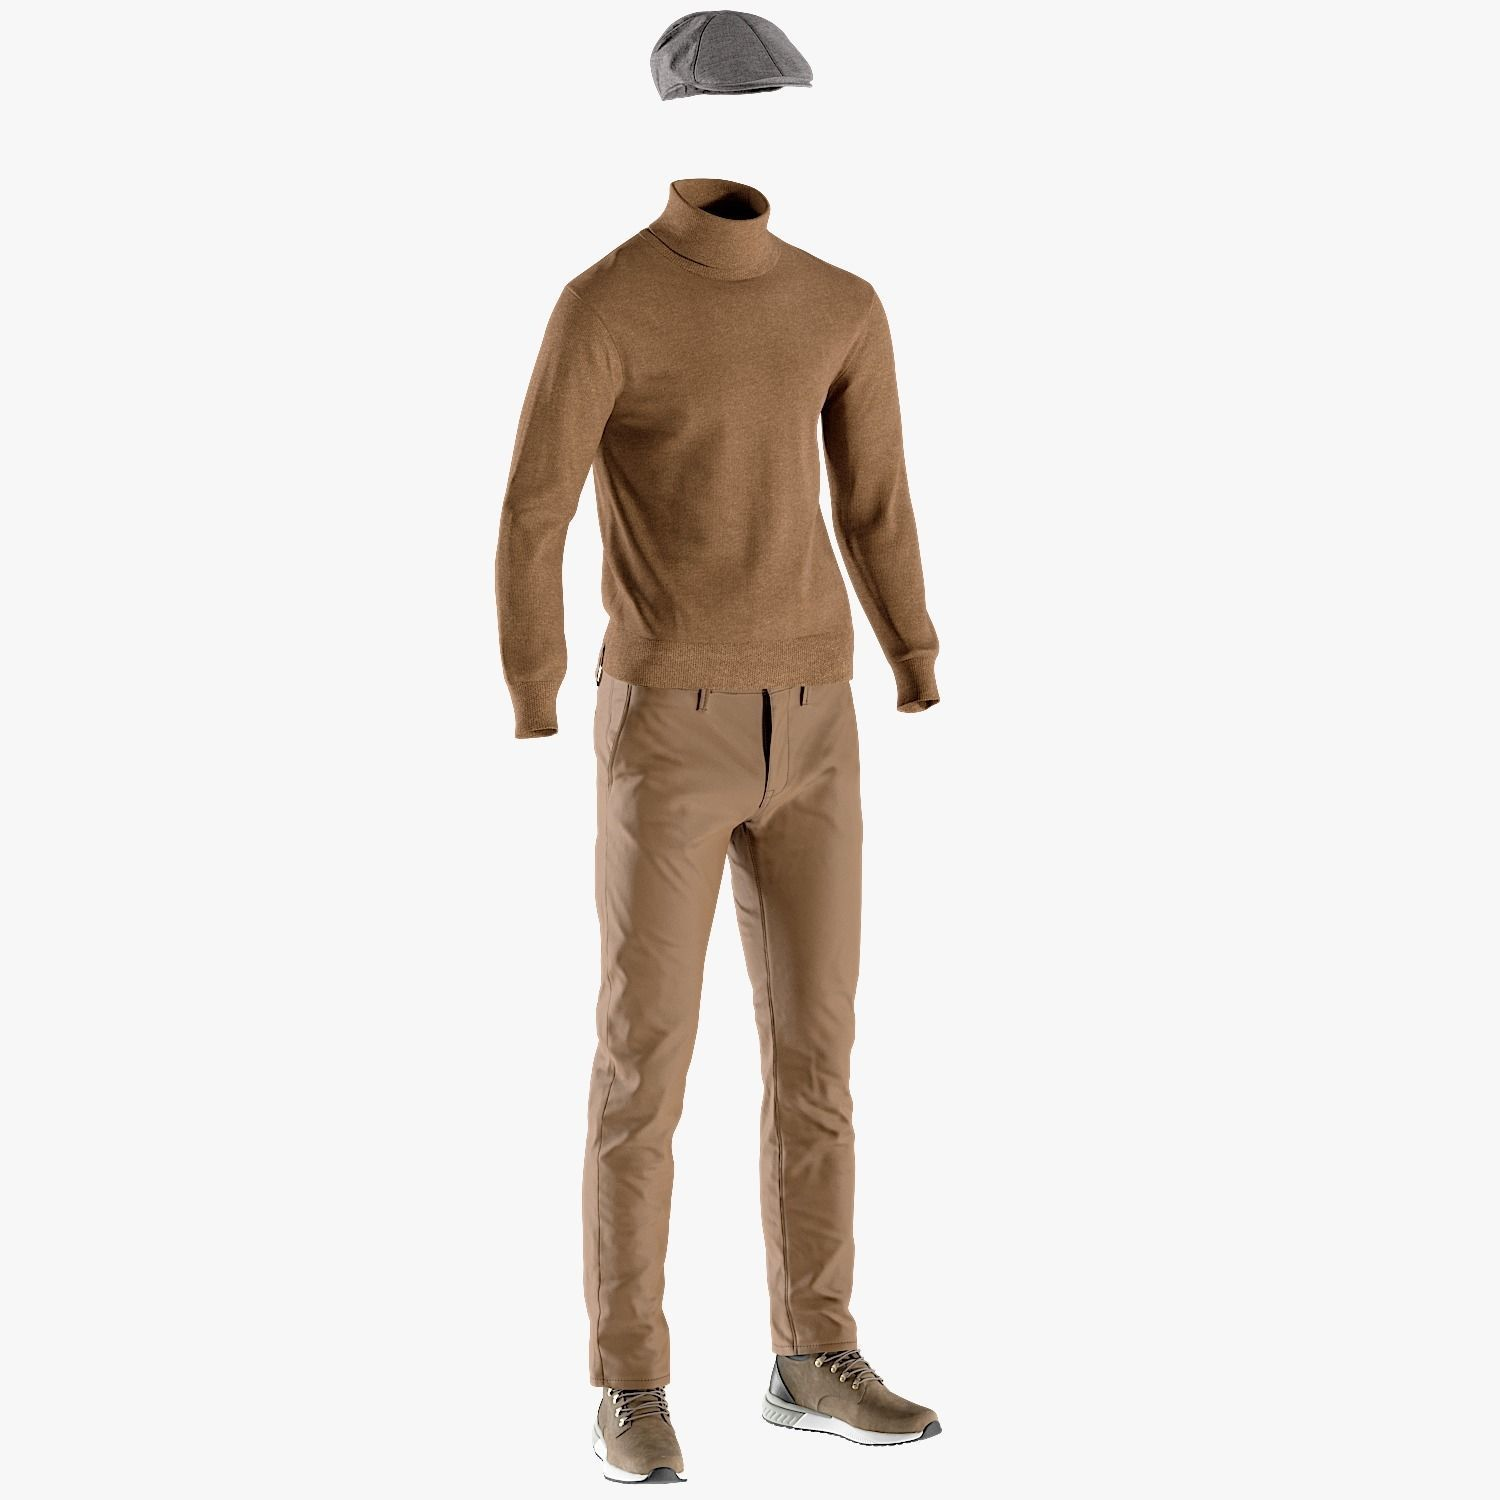 Mens Boots with Pants Pullover Hat 15